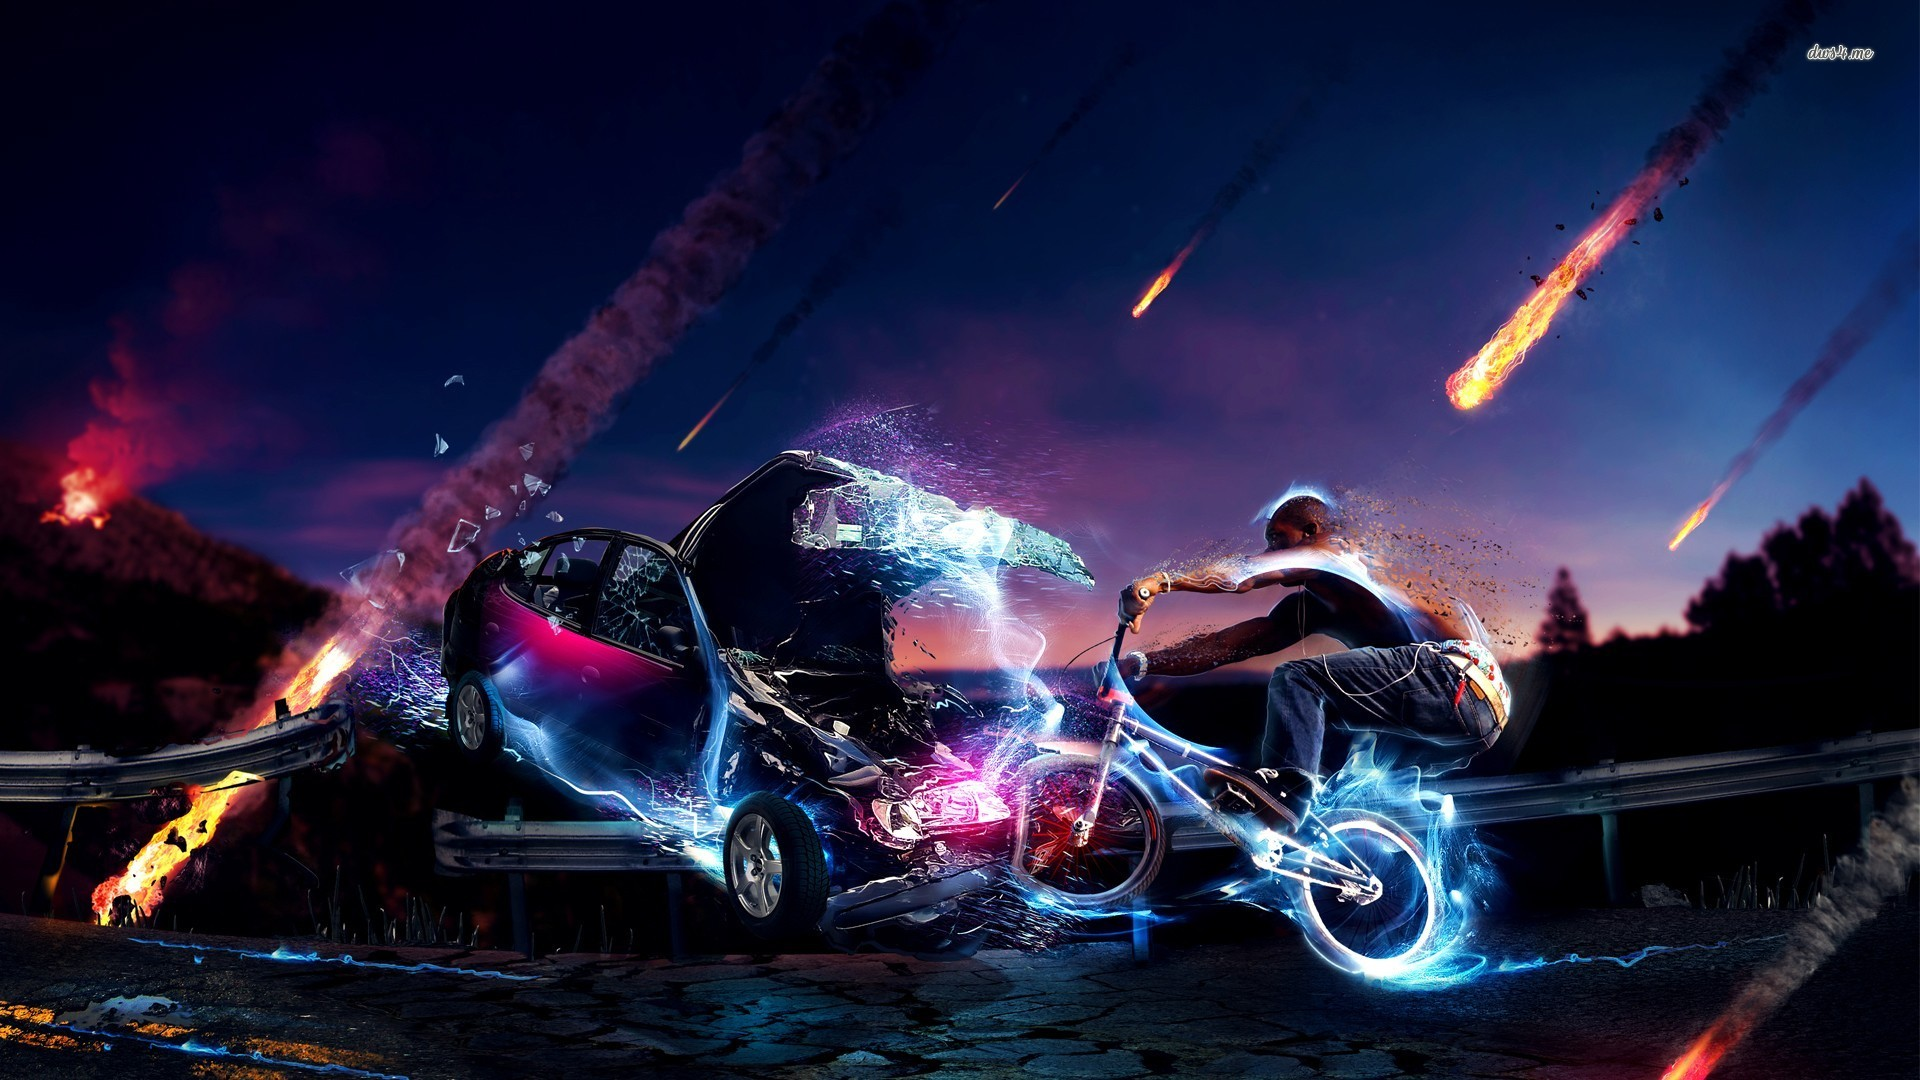 1920 Car Synthwave Wallpaper Crashing A Bicycle Wallpaper 1280x800 47550 Hd Wallpapers